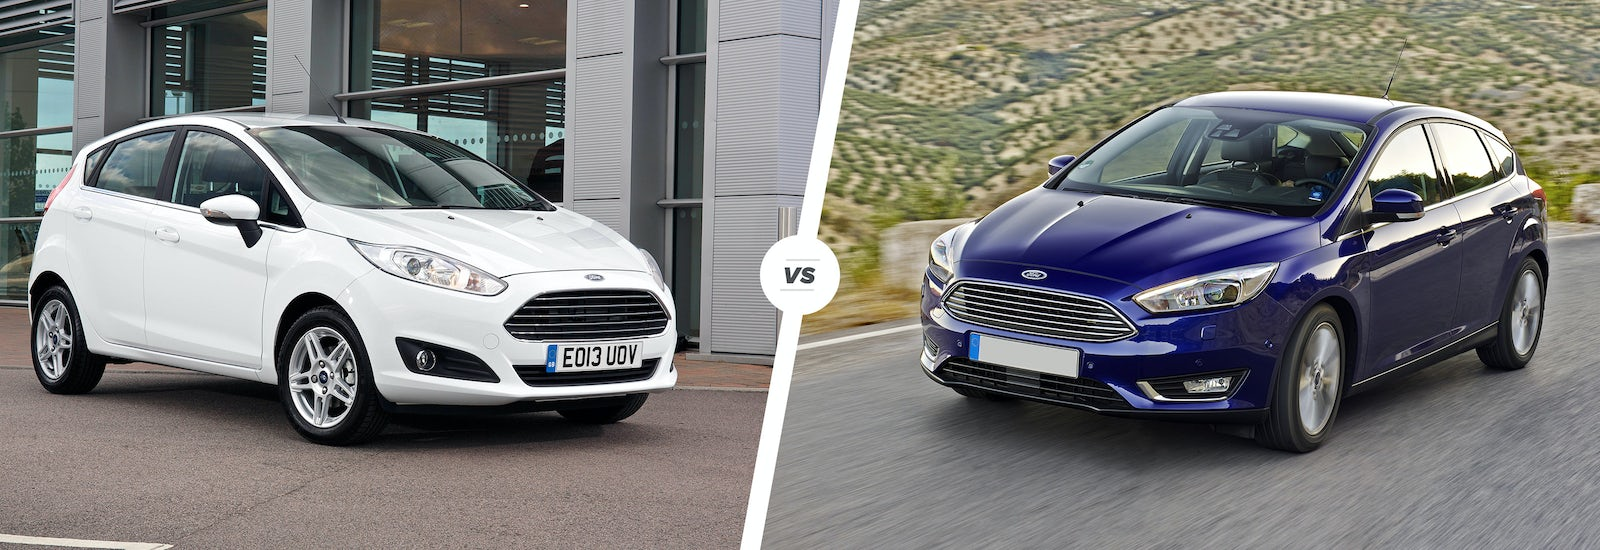 Ford Fiesta Vs Focus Which Is Best Carwow 2000 Se Sedan The Larger And More Expensive But All Car Youll Ever Need Weve Compared Pair To Find Out